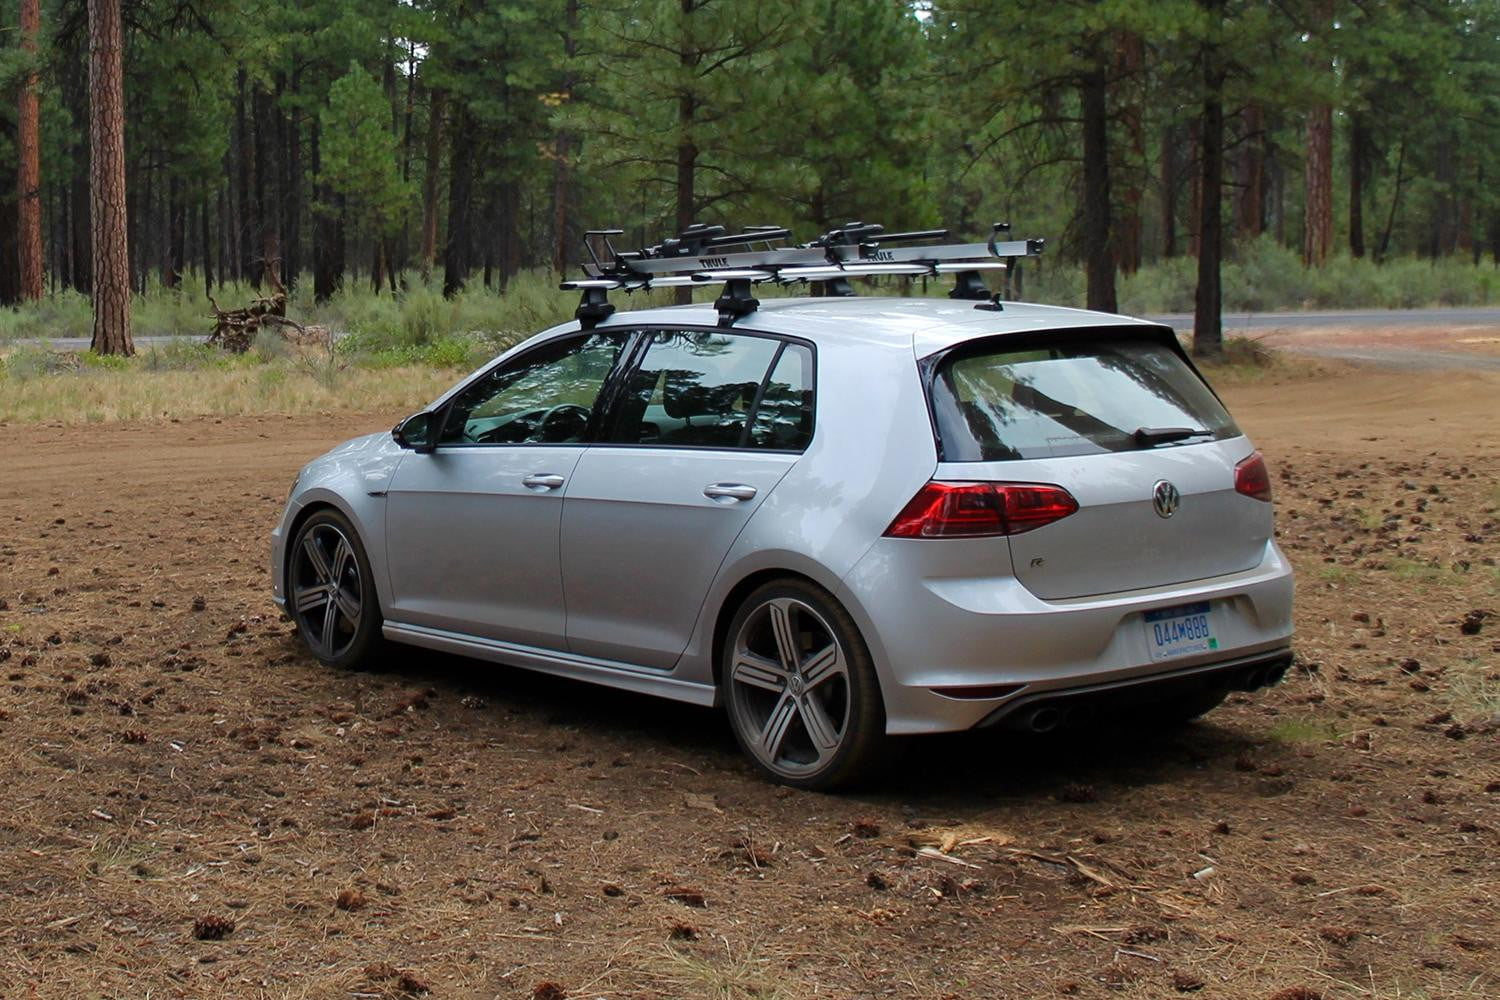 2015 vw golf r review pictures specs performance digital trends. Black Bedroom Furniture Sets. Home Design Ideas